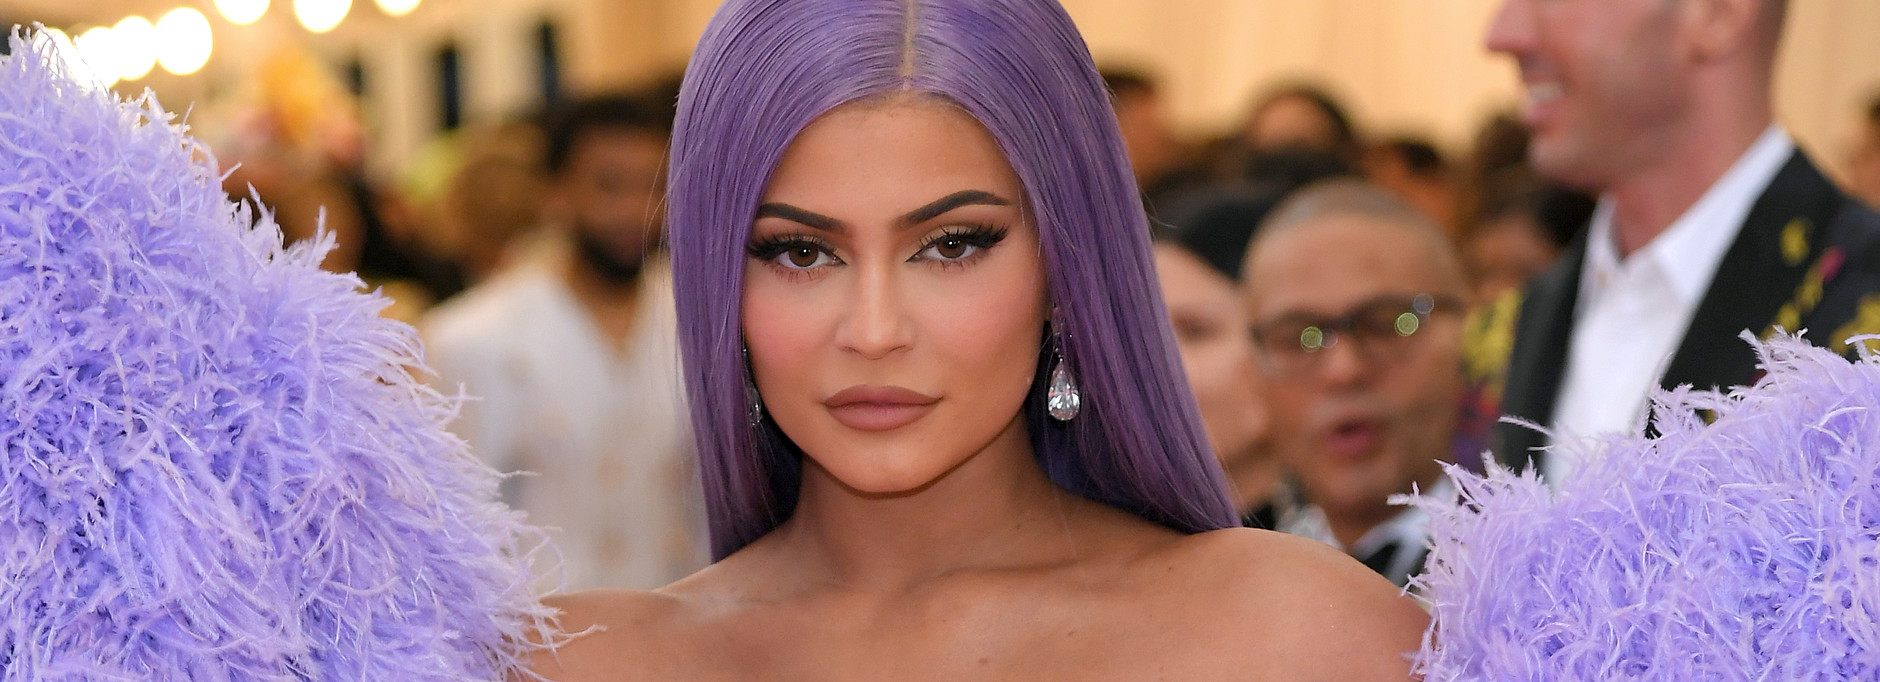 kylie jenner can make more money in one